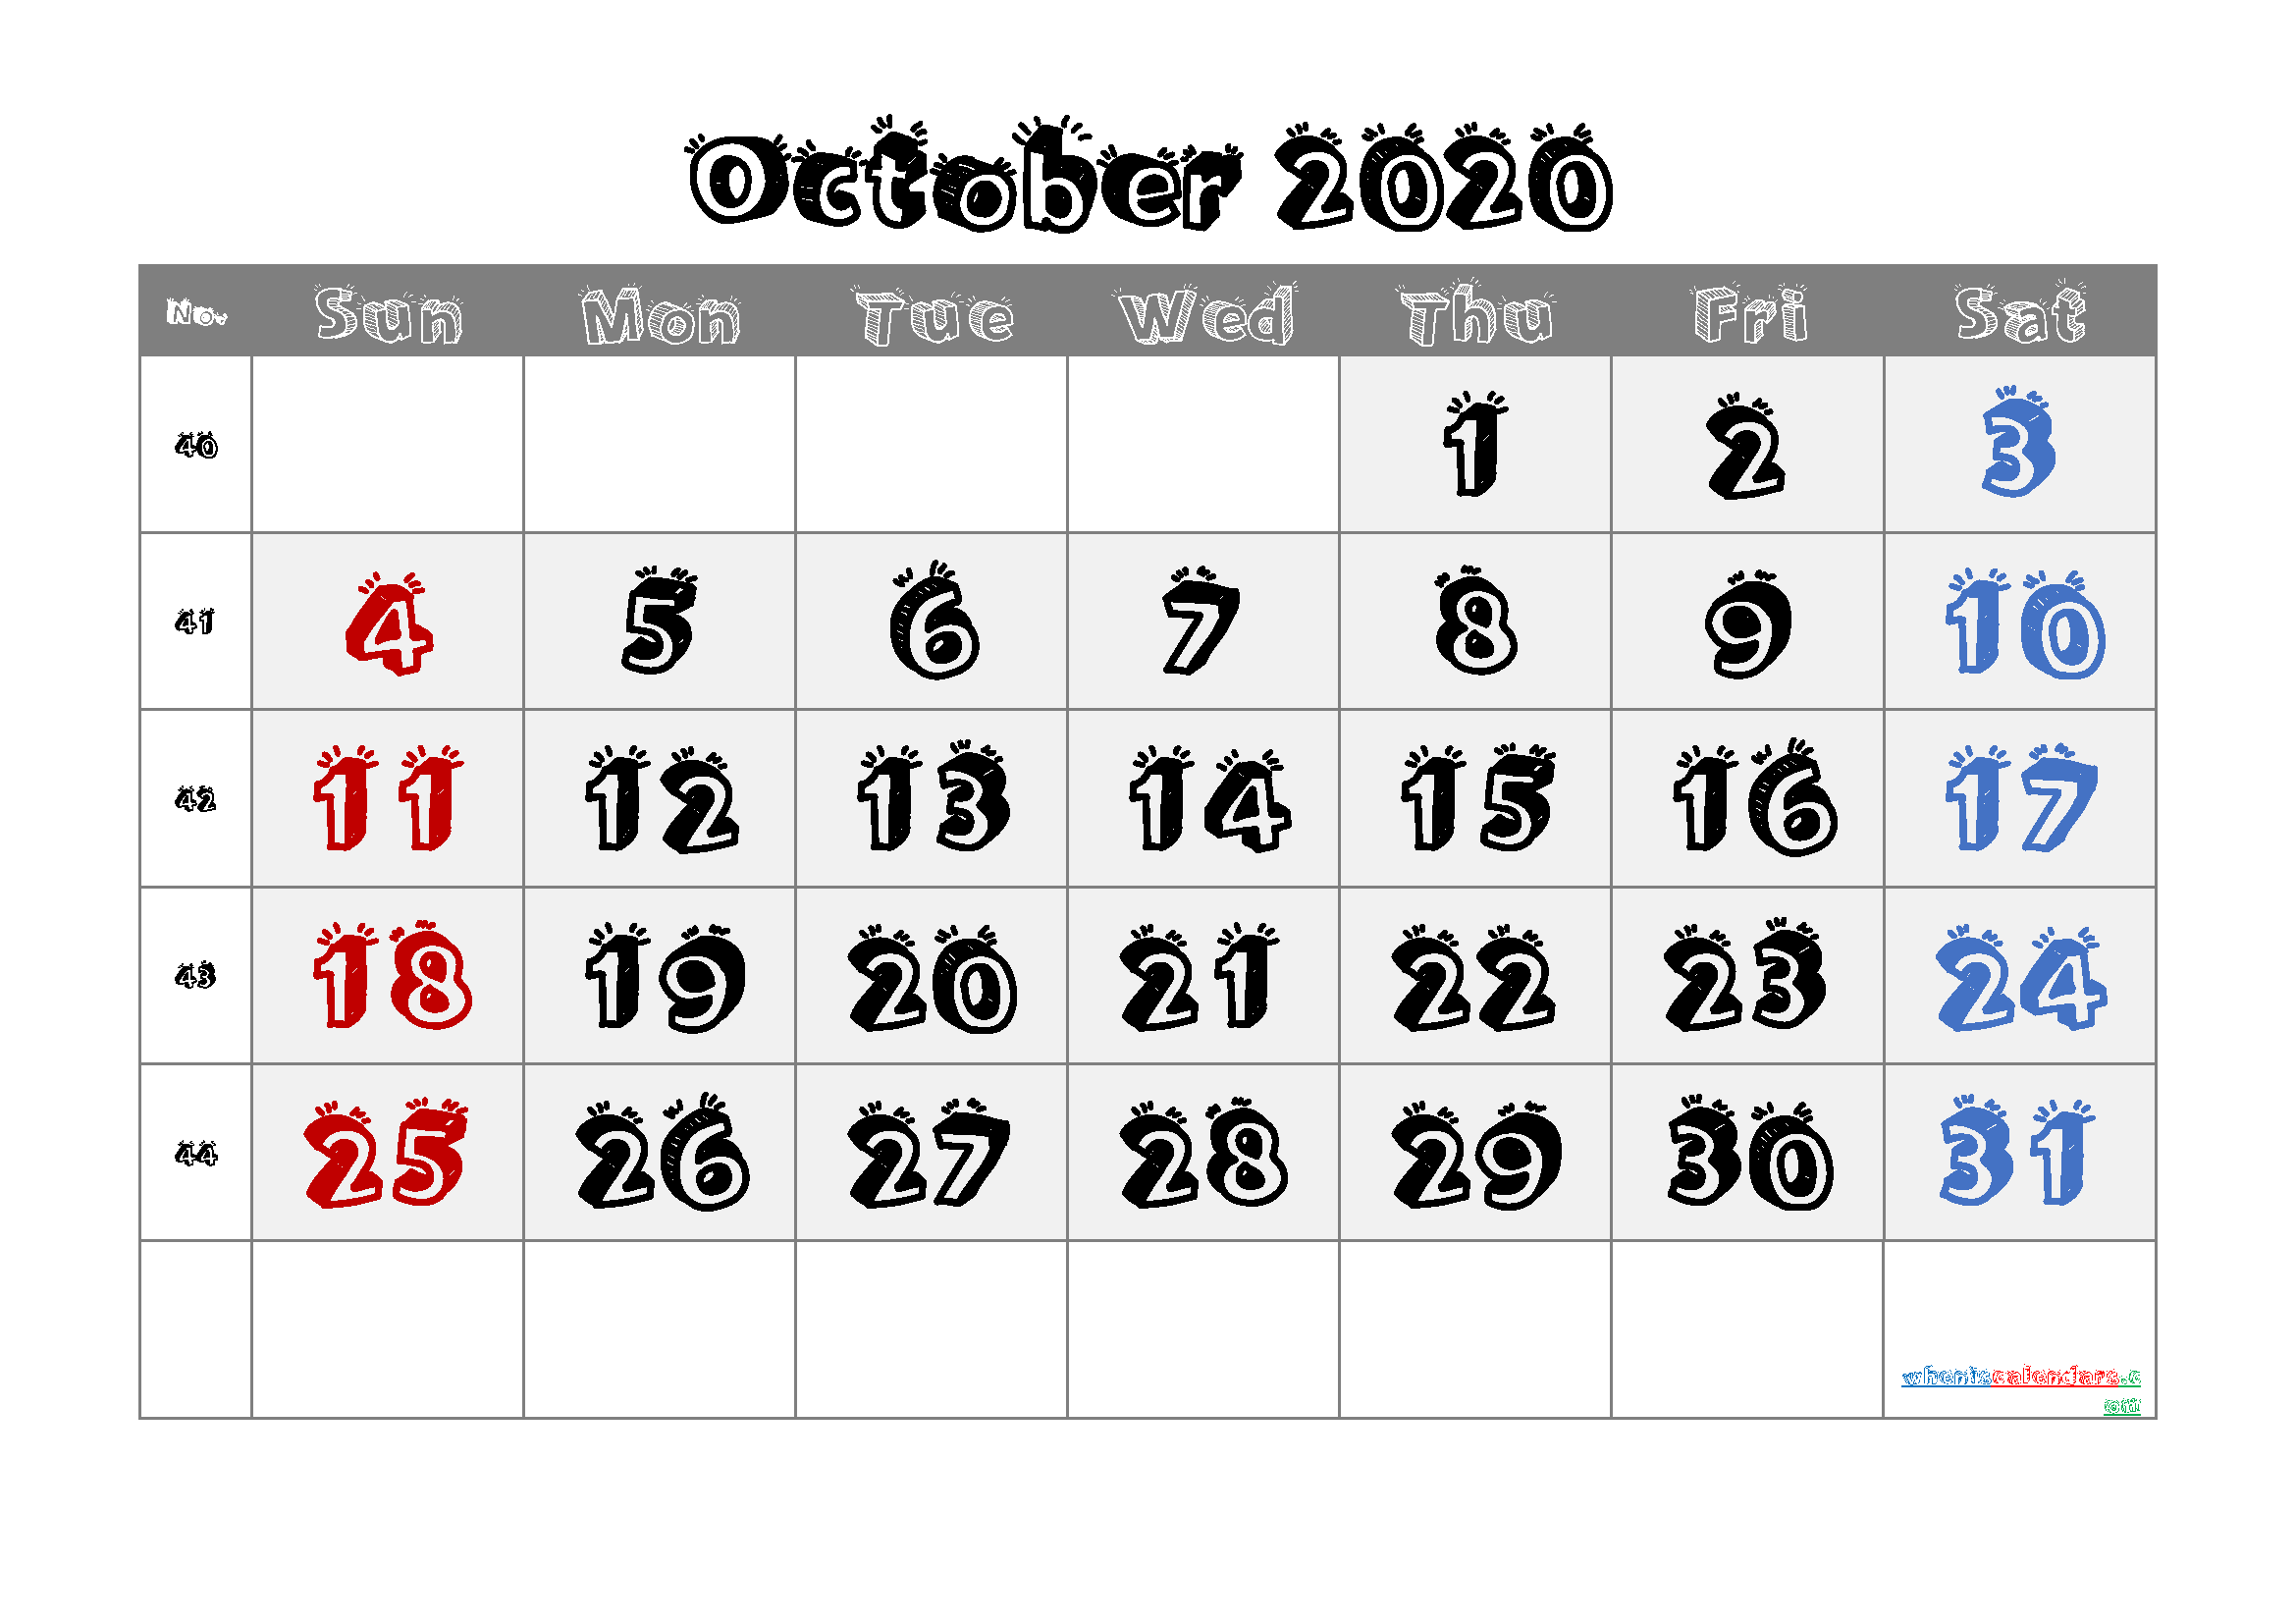 October 2020 Printable Calendar with Week Numbers